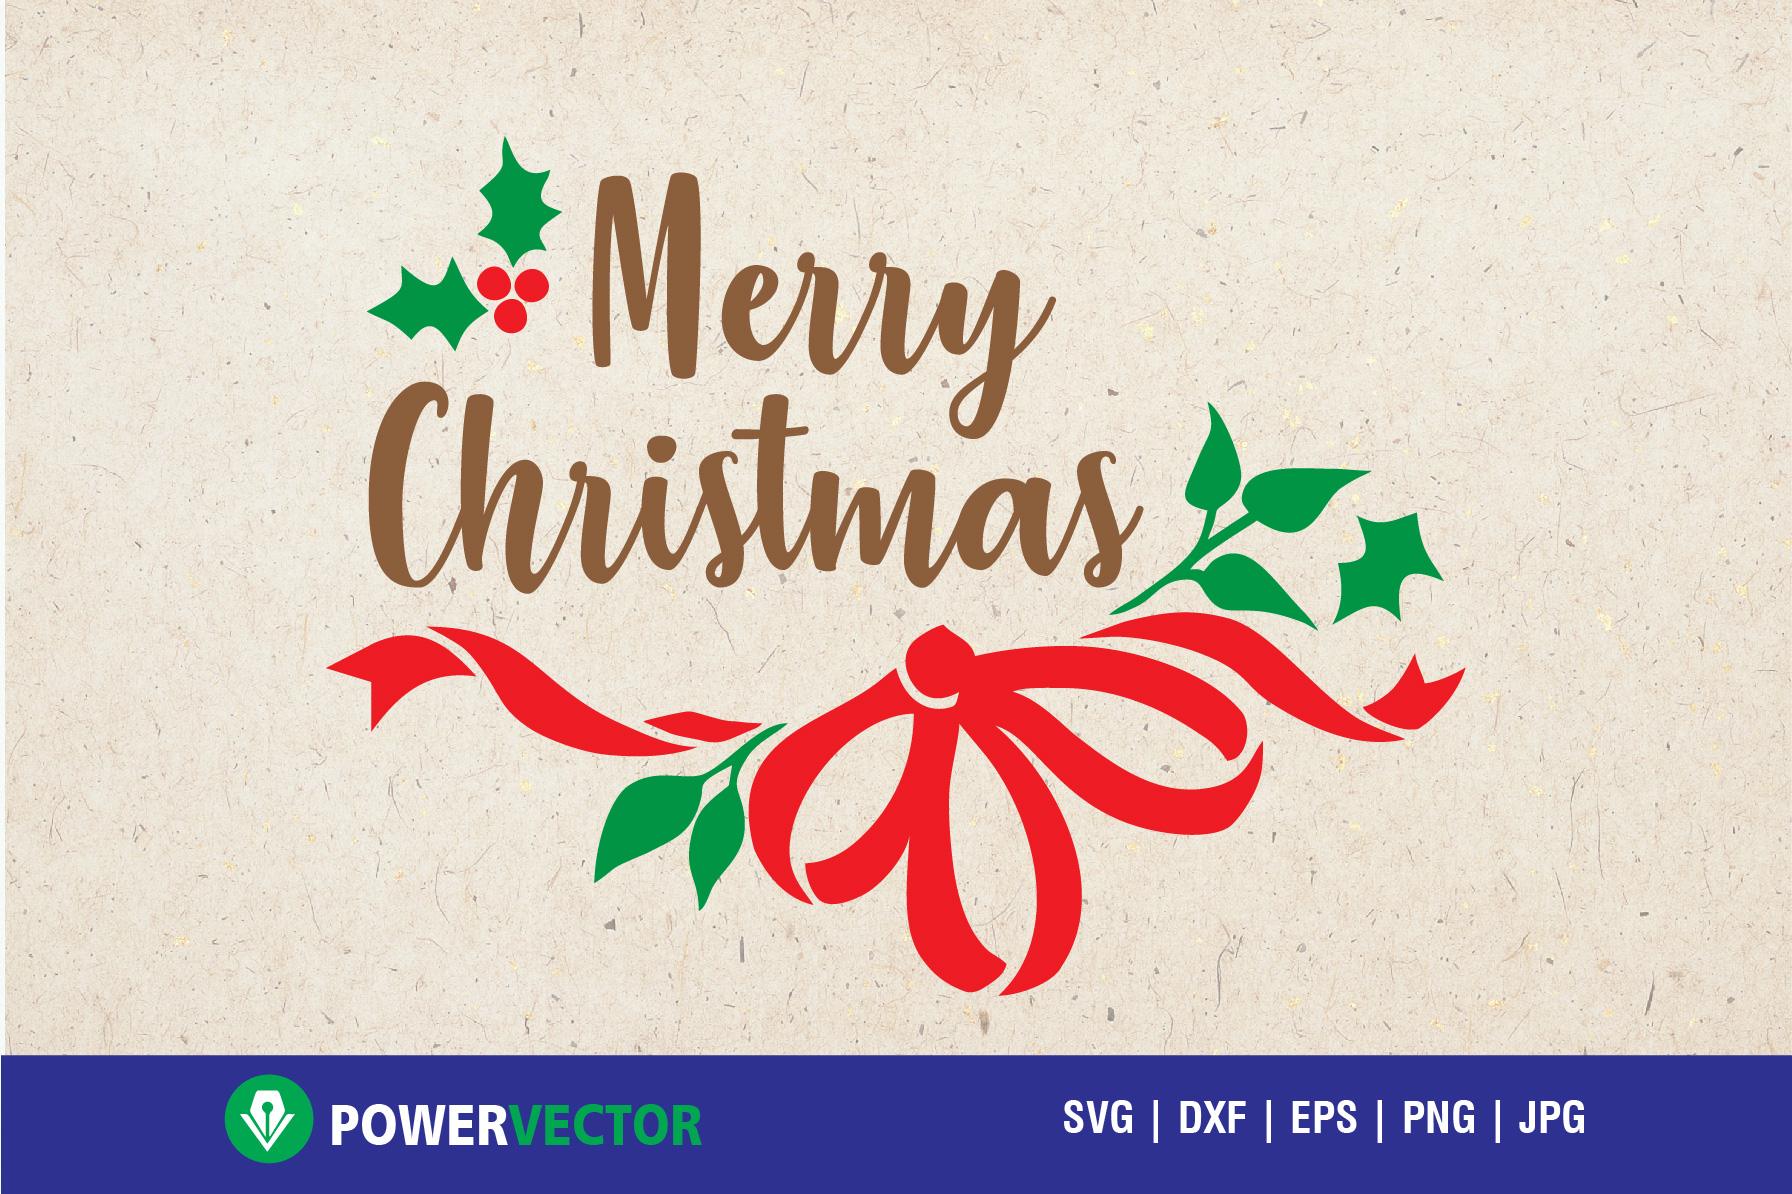 Download Free Merry Christmas Greeting Card Graphic By Powervector Creative for Cricut Explore, Silhouette and other cutting machines.